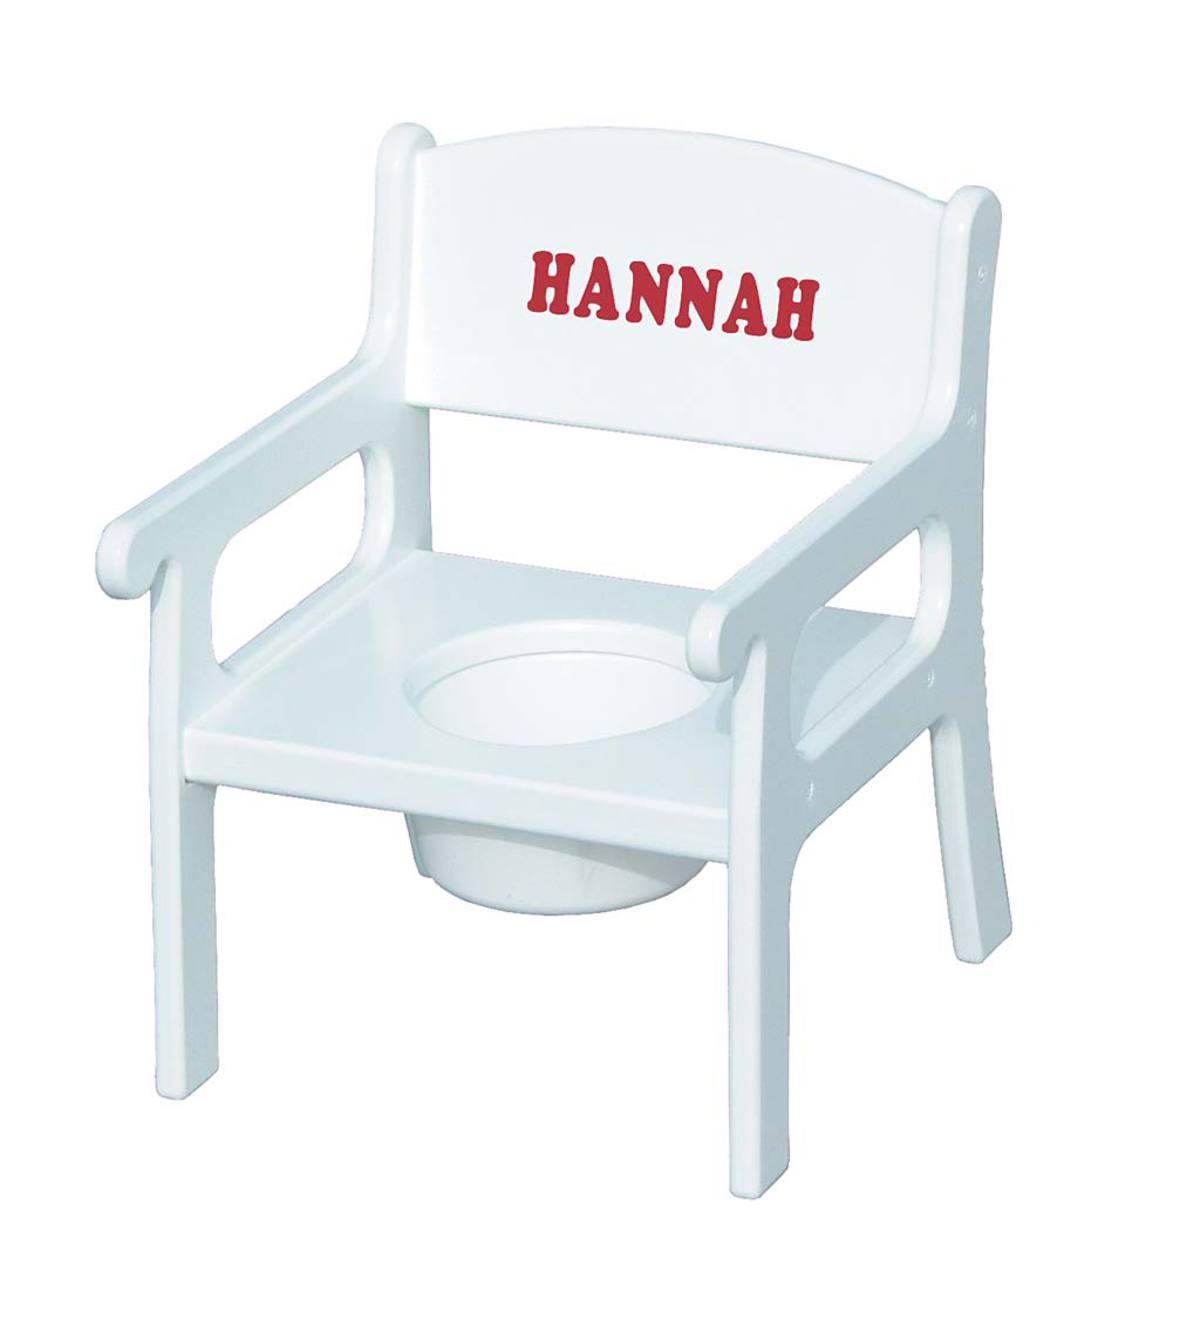 Personalized Child Potty Chair - White-Red Lettering